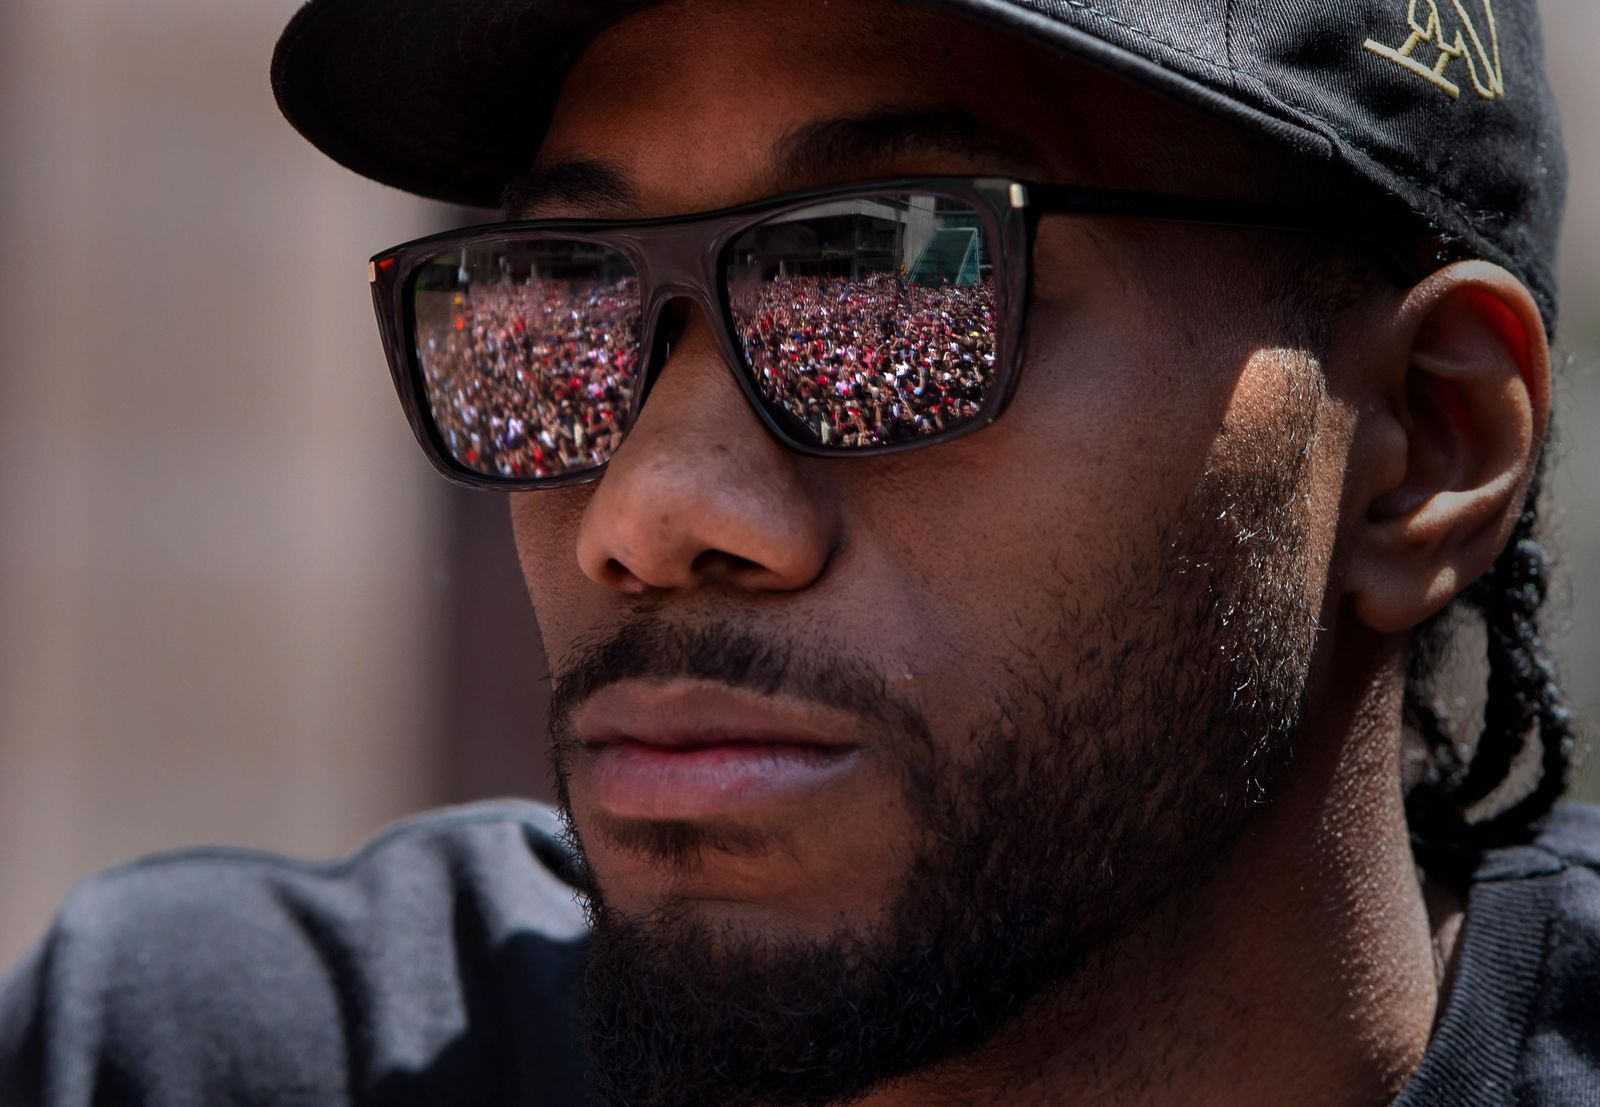 Cheering fans are reflected in the sunglasses of Toronto Raptors' Kawhi Leonard during the team's NBA basketball championship parade in Toronto, Monday, June 17, 2019. (Frank Gunn/The Canadian Press via AP)